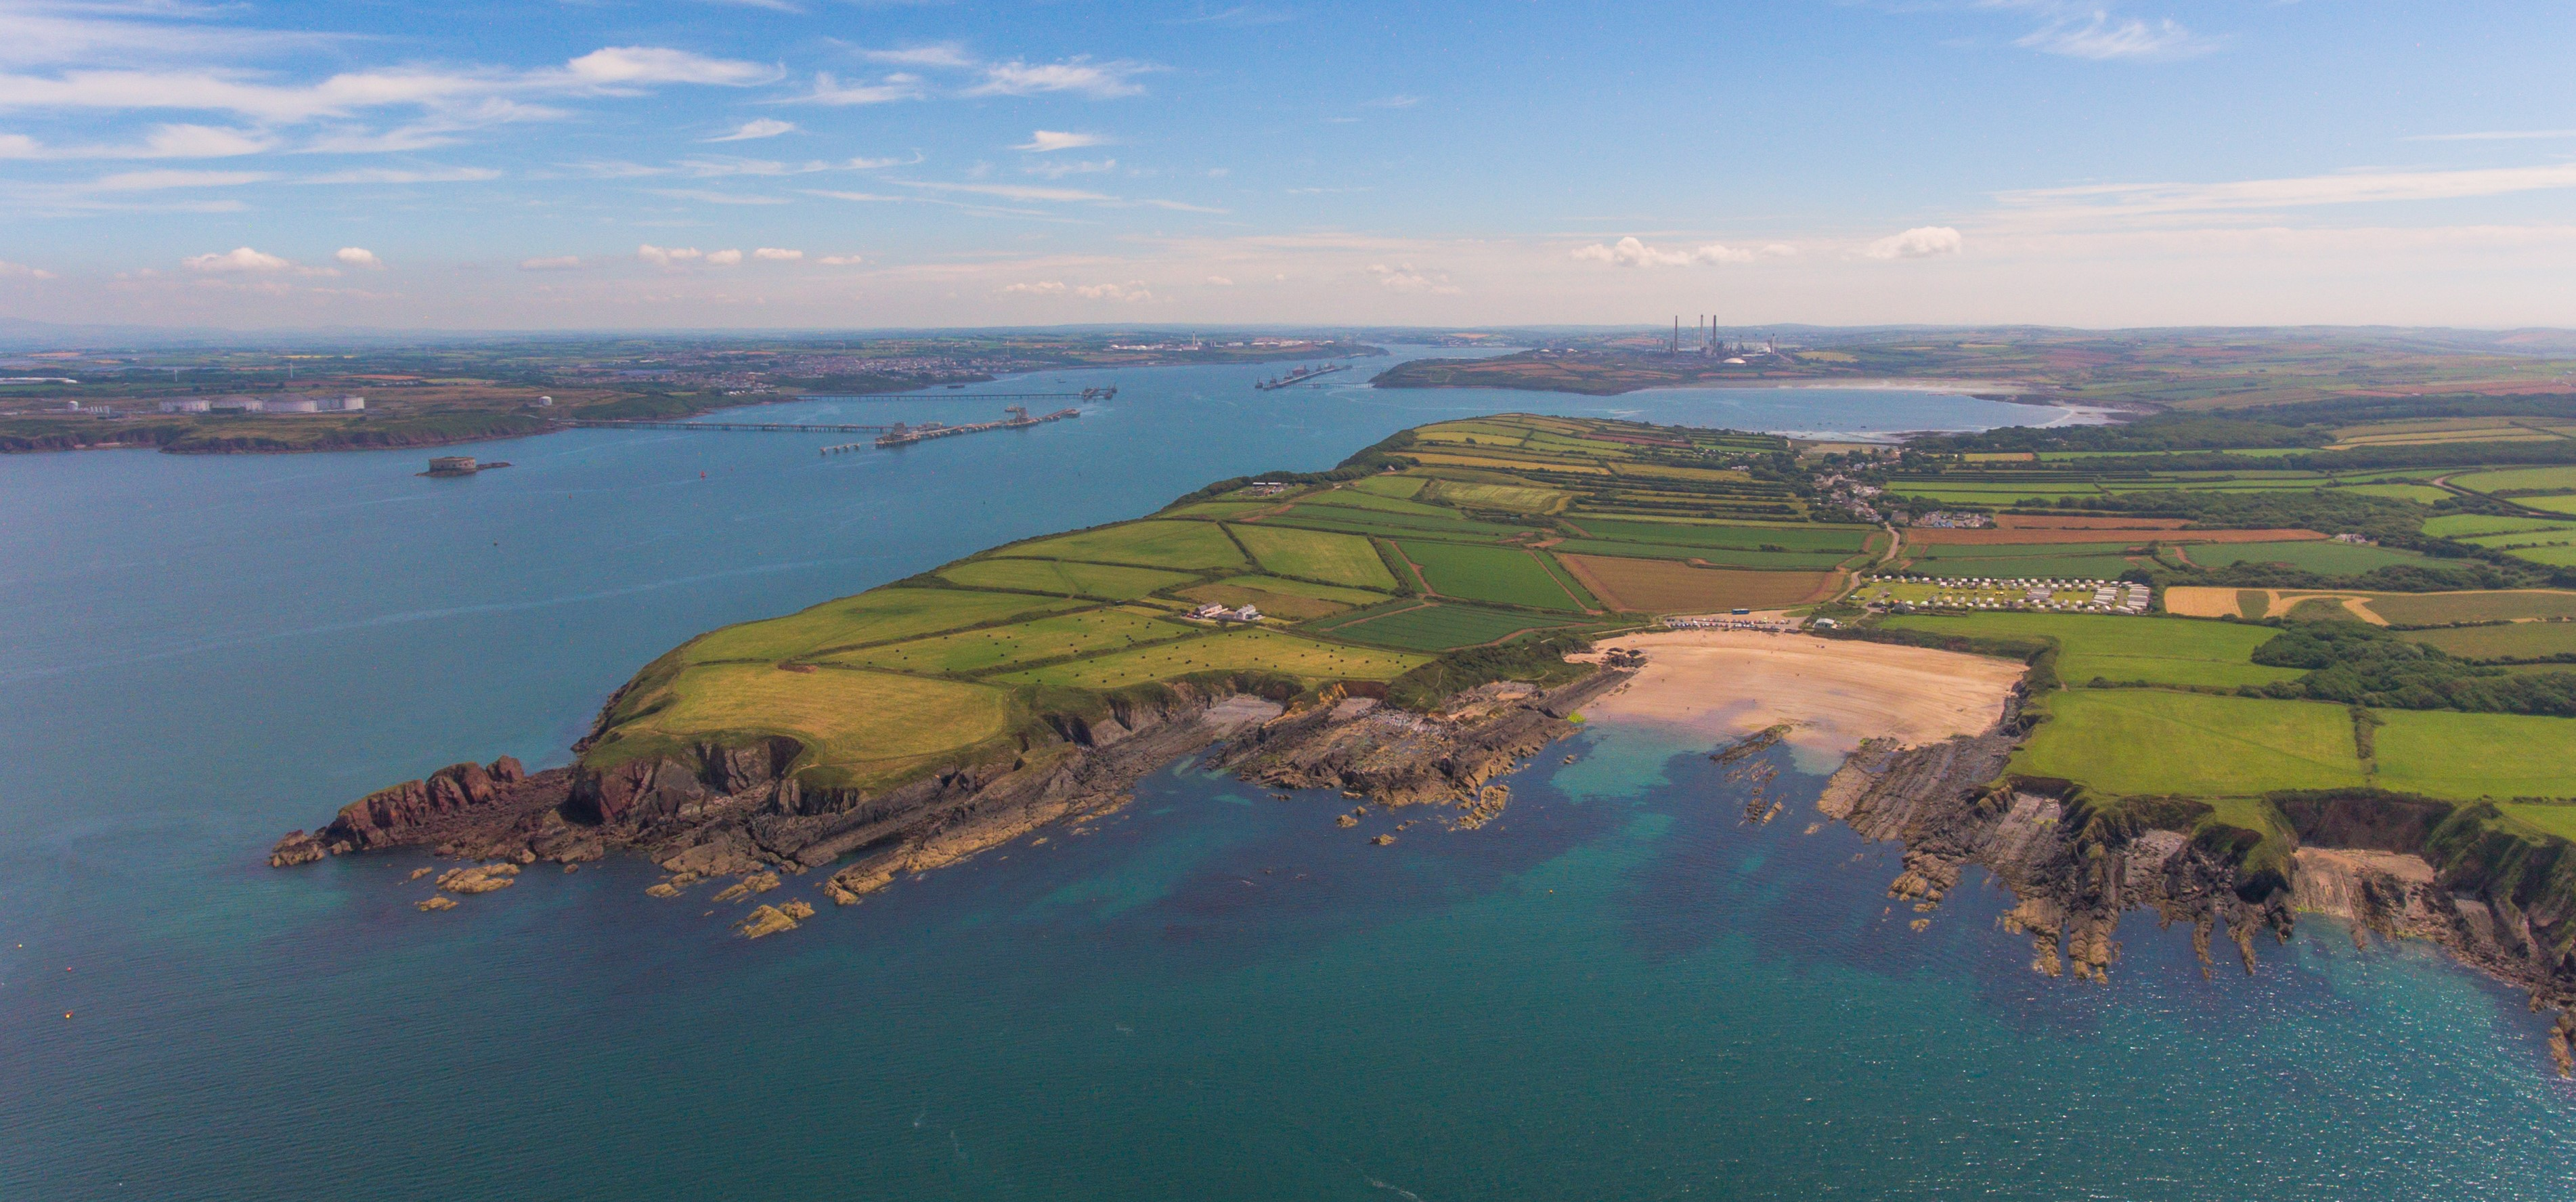 DJI_0060-c-Pembrokeshire-Coastal-Forum-copy